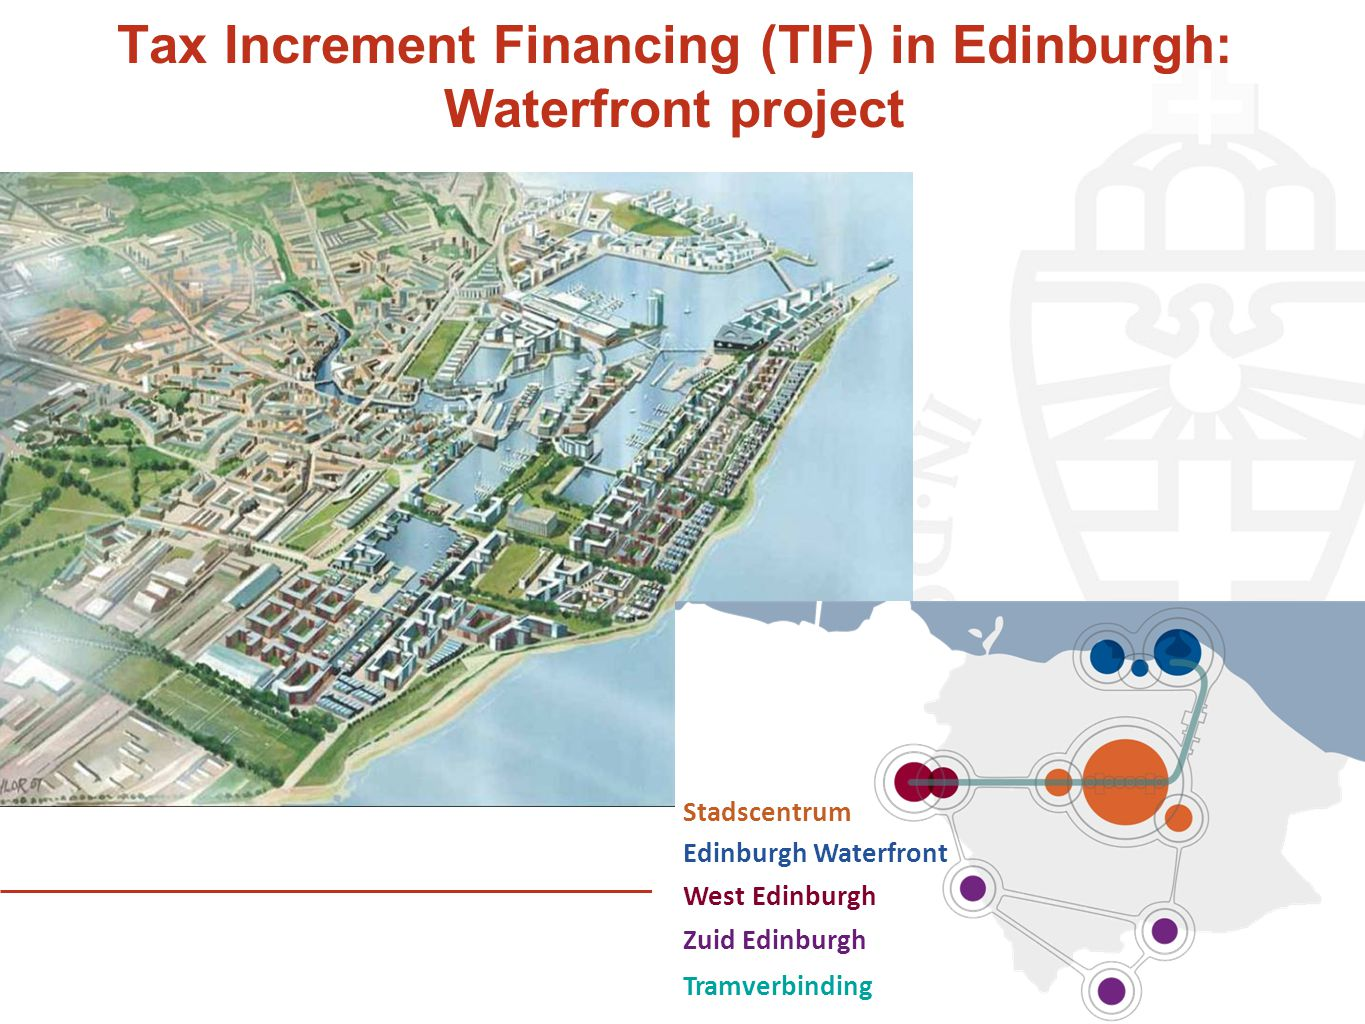 Tax Increment Financing (TIF) in Edinburgh: Waterfront project